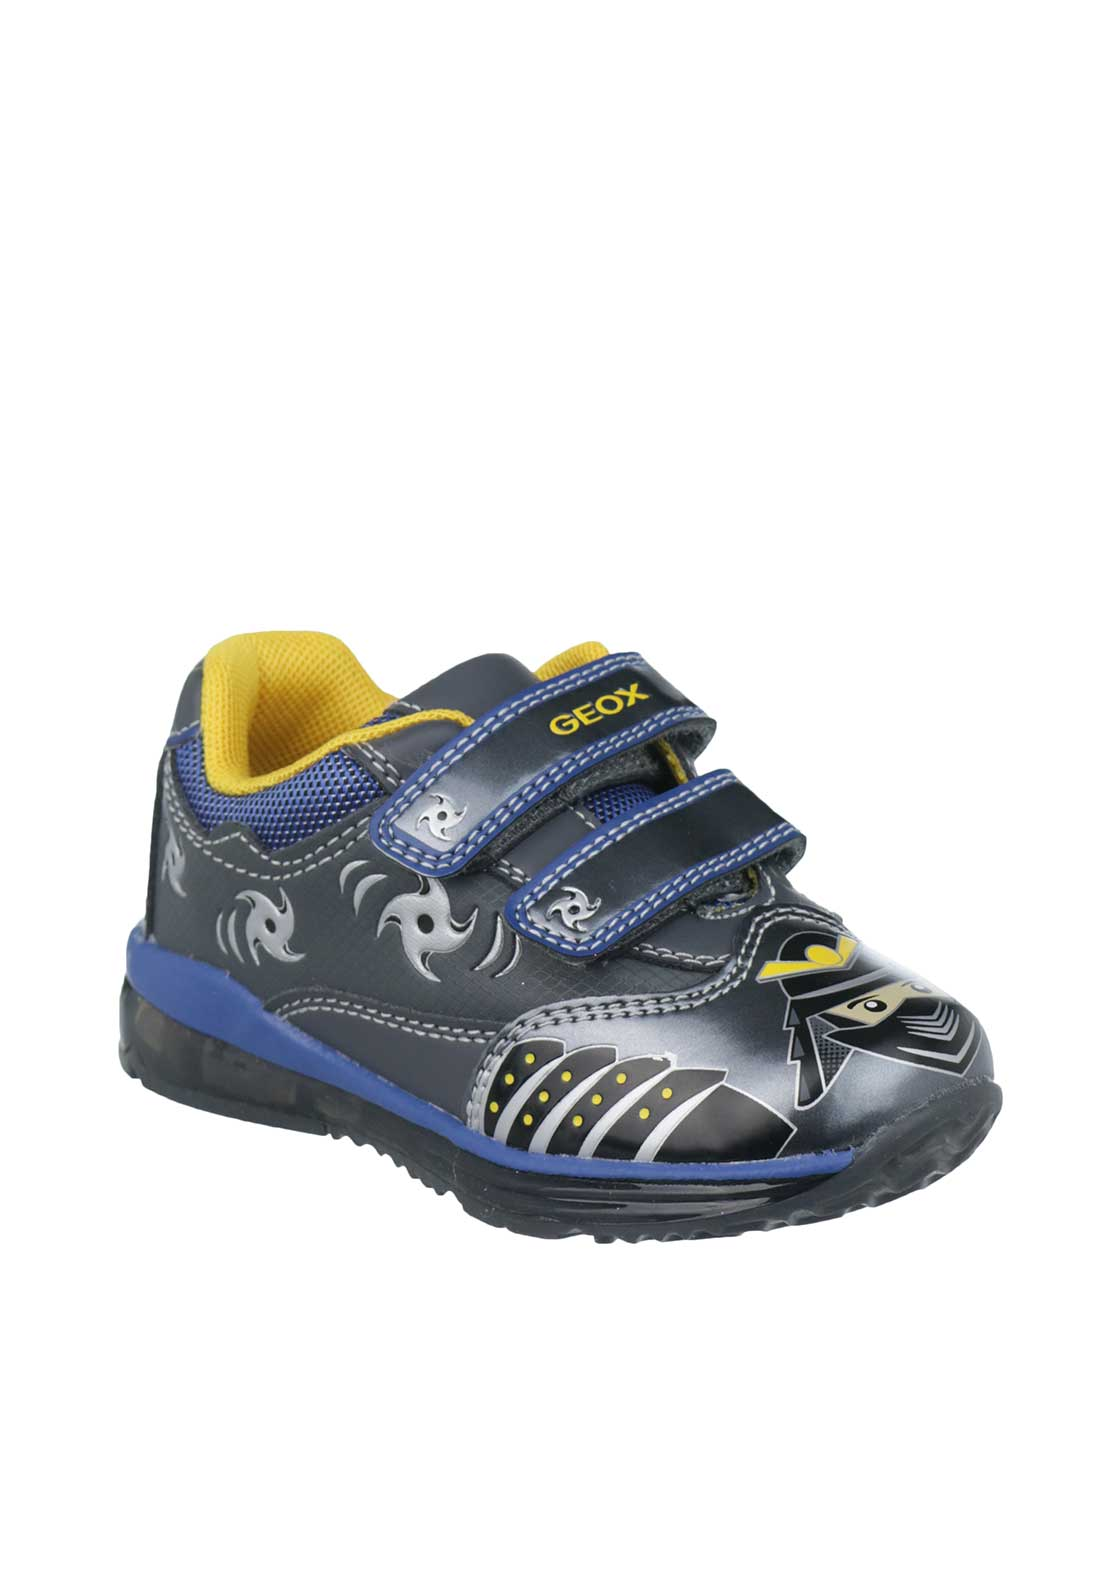 Geox Baby Boys Light Up Trainers, Grey